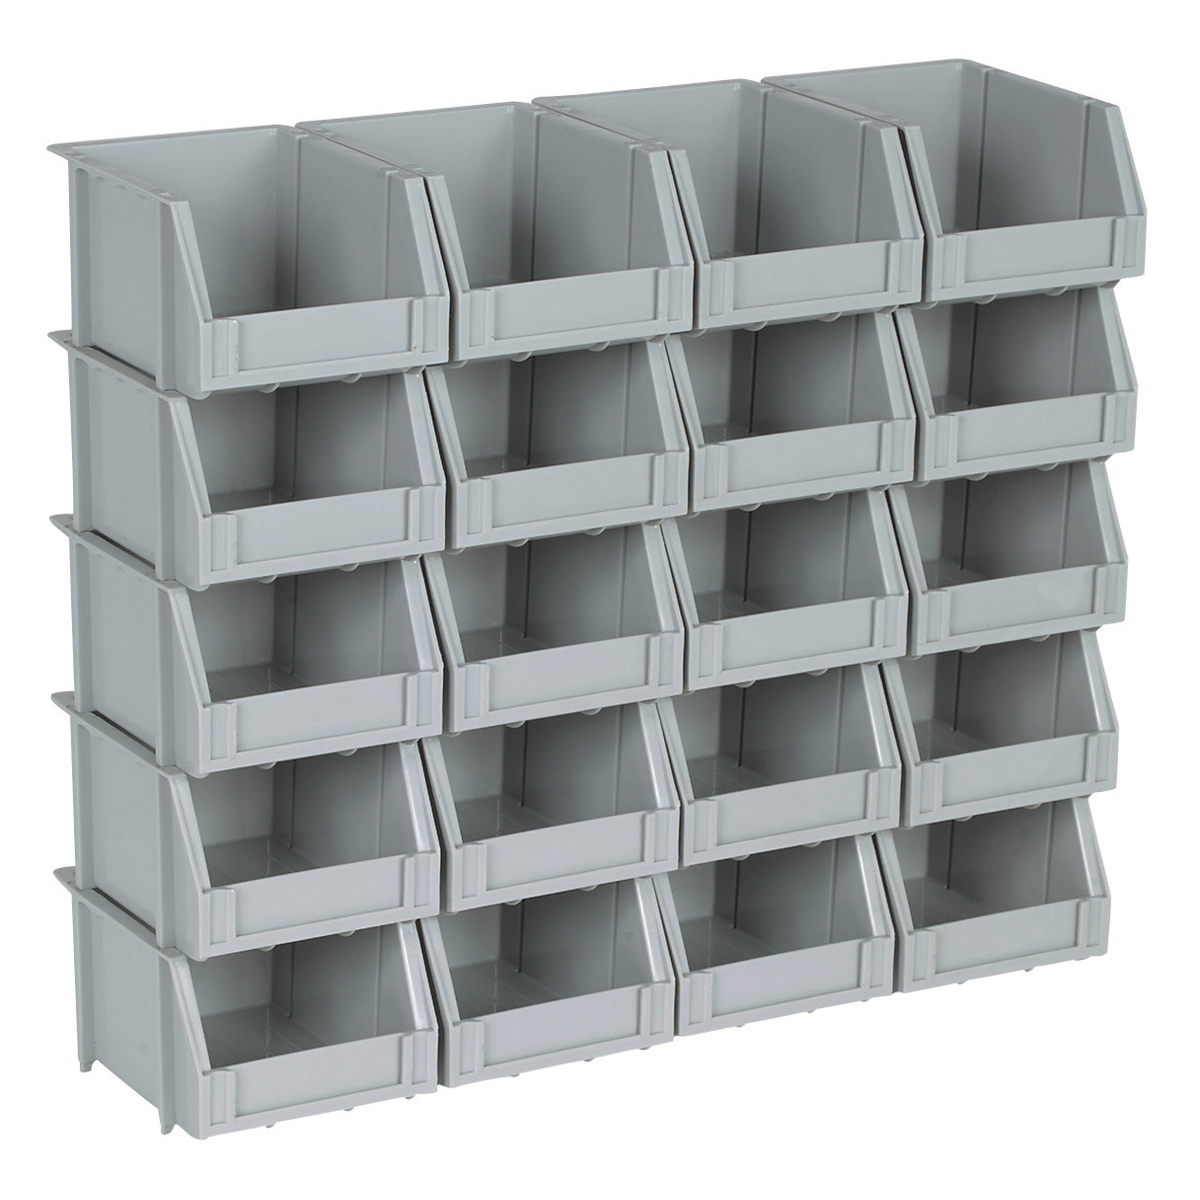 sc 1 st  Harbor Freight & 20 Piece Poly Bins and Rails